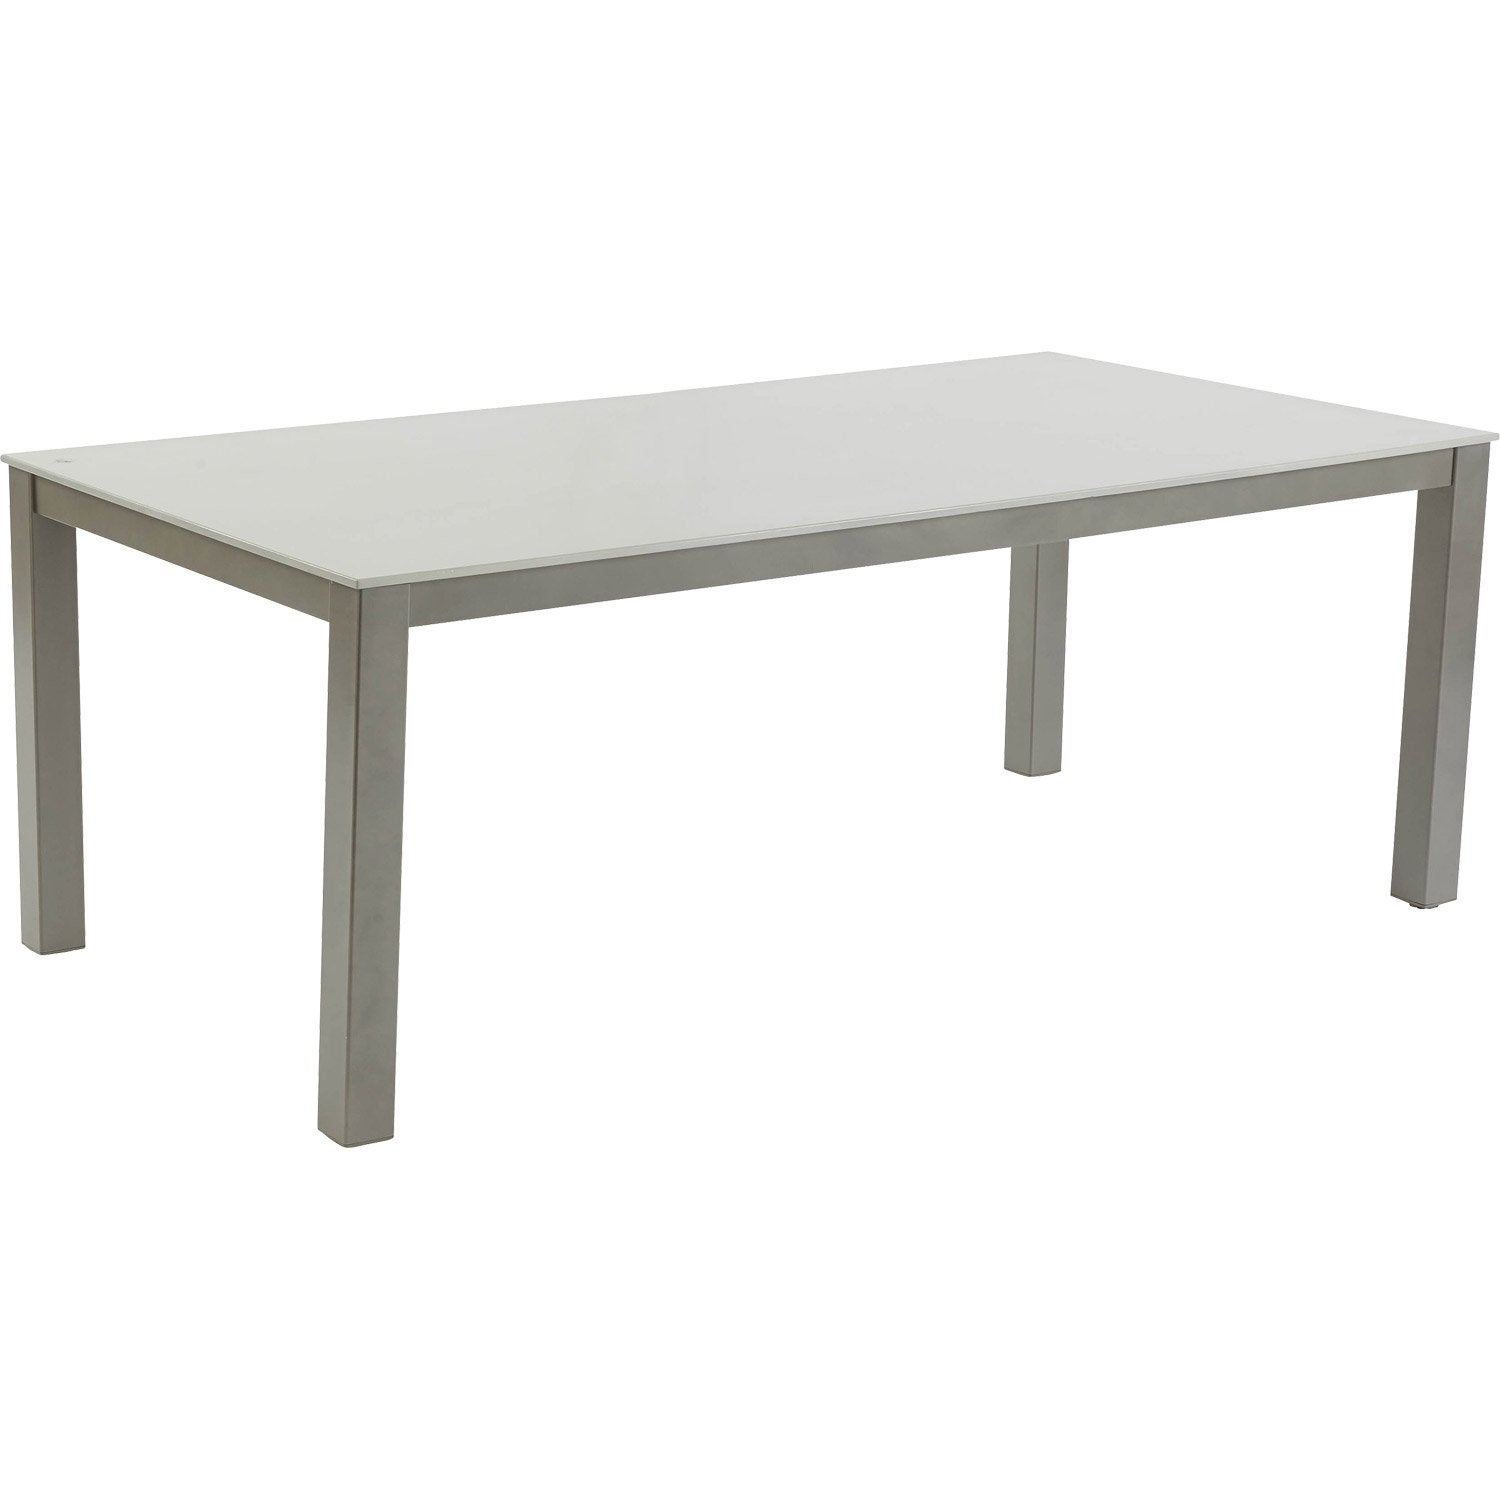 table de jardin rectangulaire table 200x100cm alu durantie